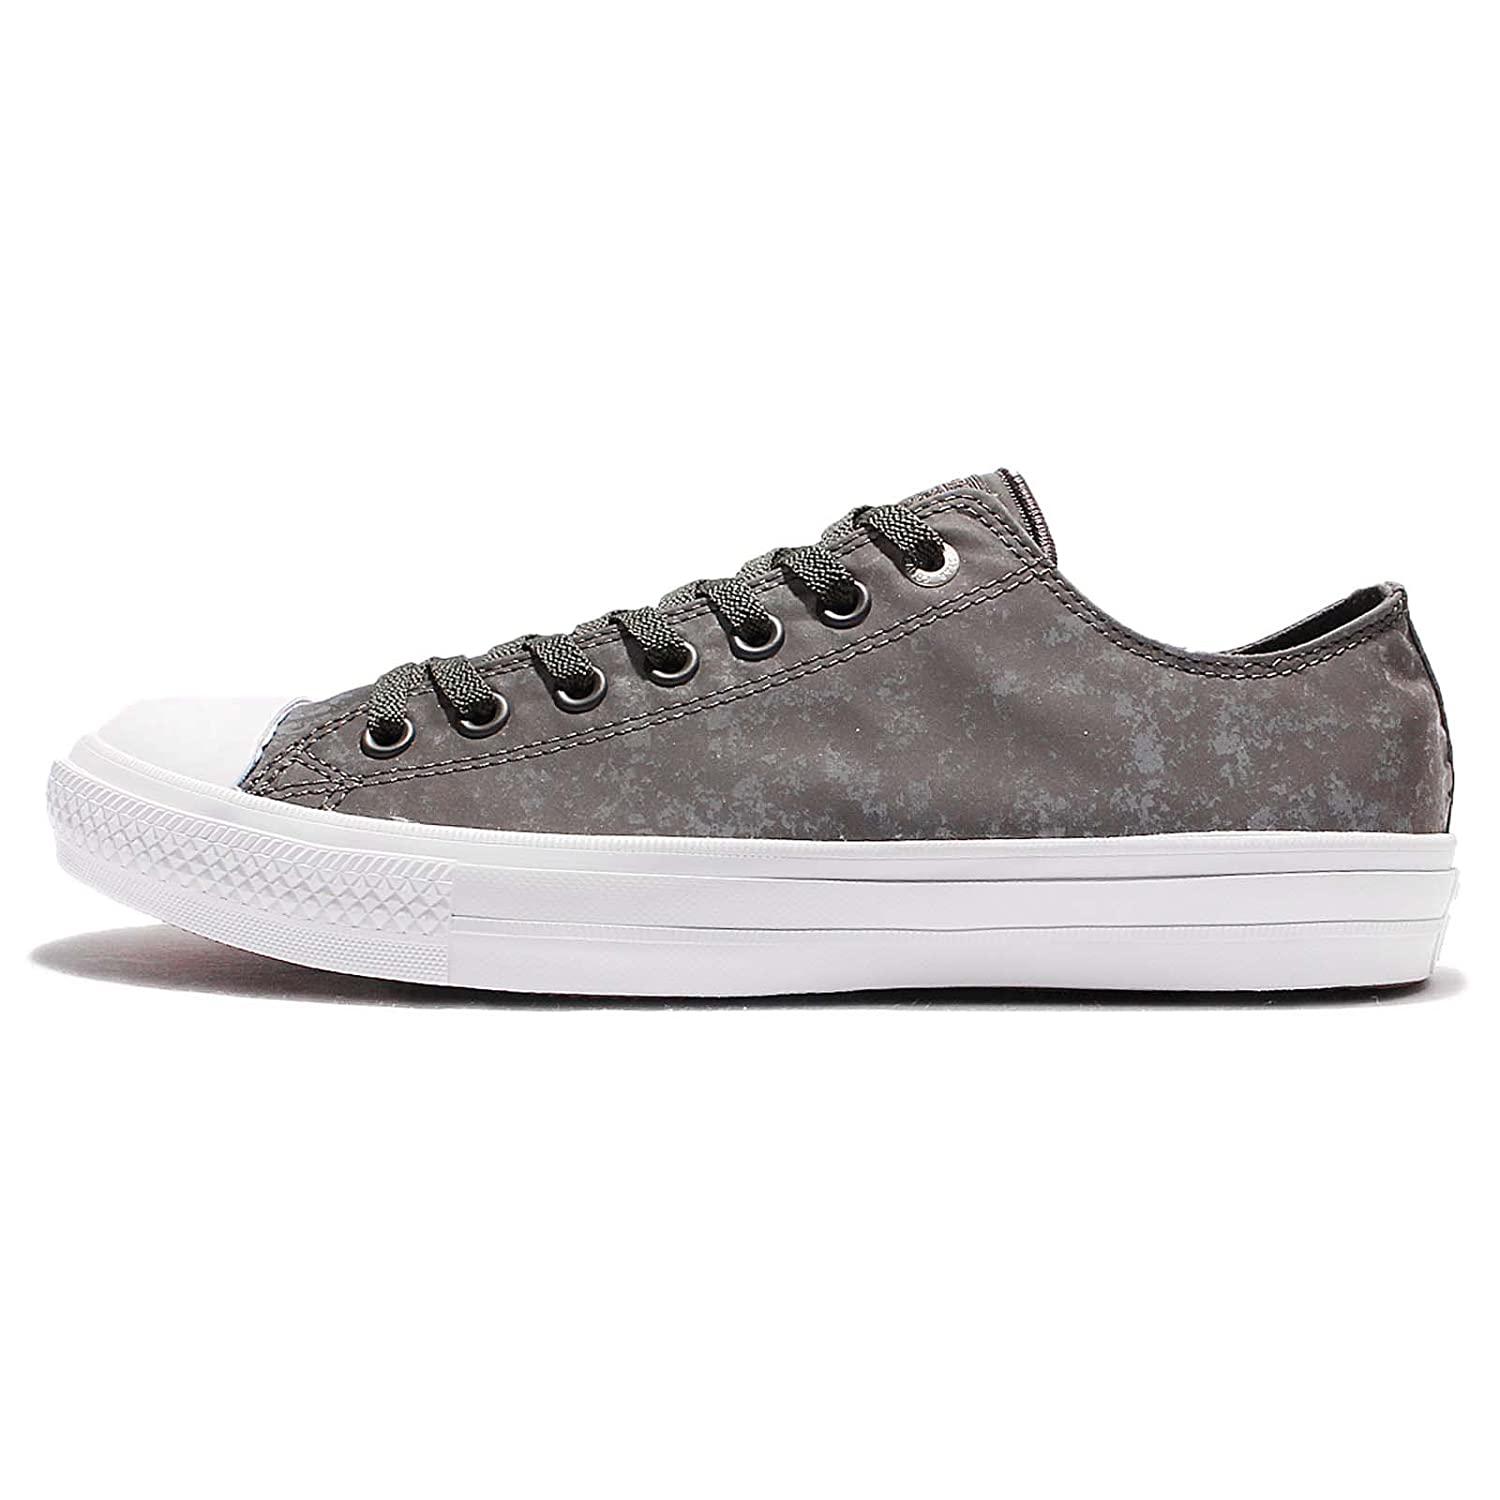 Converse Chuck Taylor All Star Core Ox B076WX8TTP 10.5 B(M) US Women / 8.5 D(M) US Men|Shale Grey/Pure Silver/White